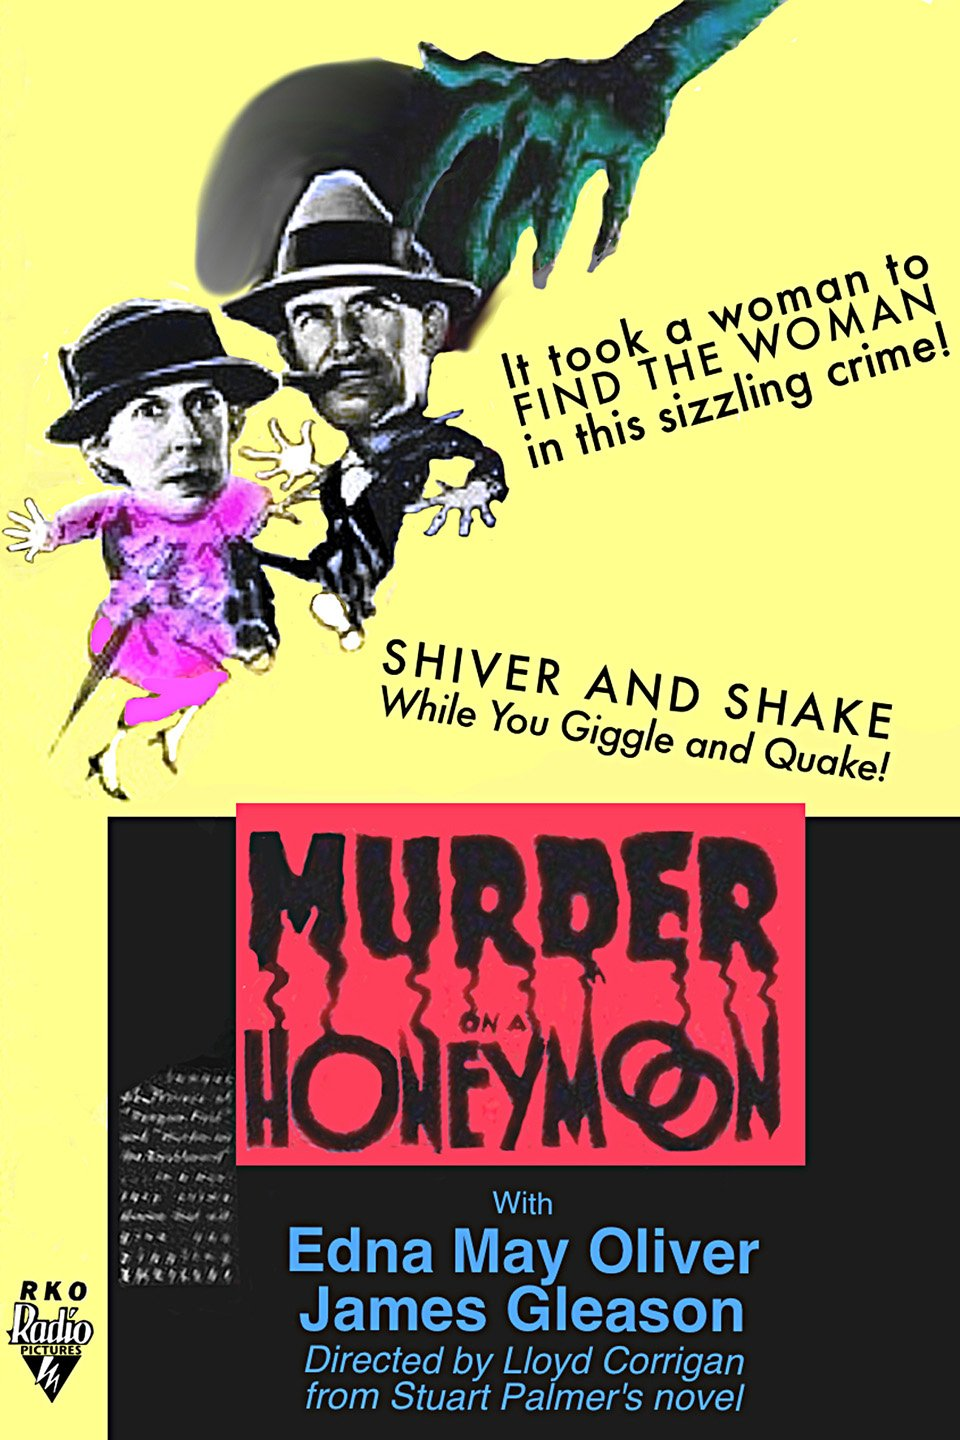 James Gleason and Edna May Oliver in Murder on a Honeymoon (1935)